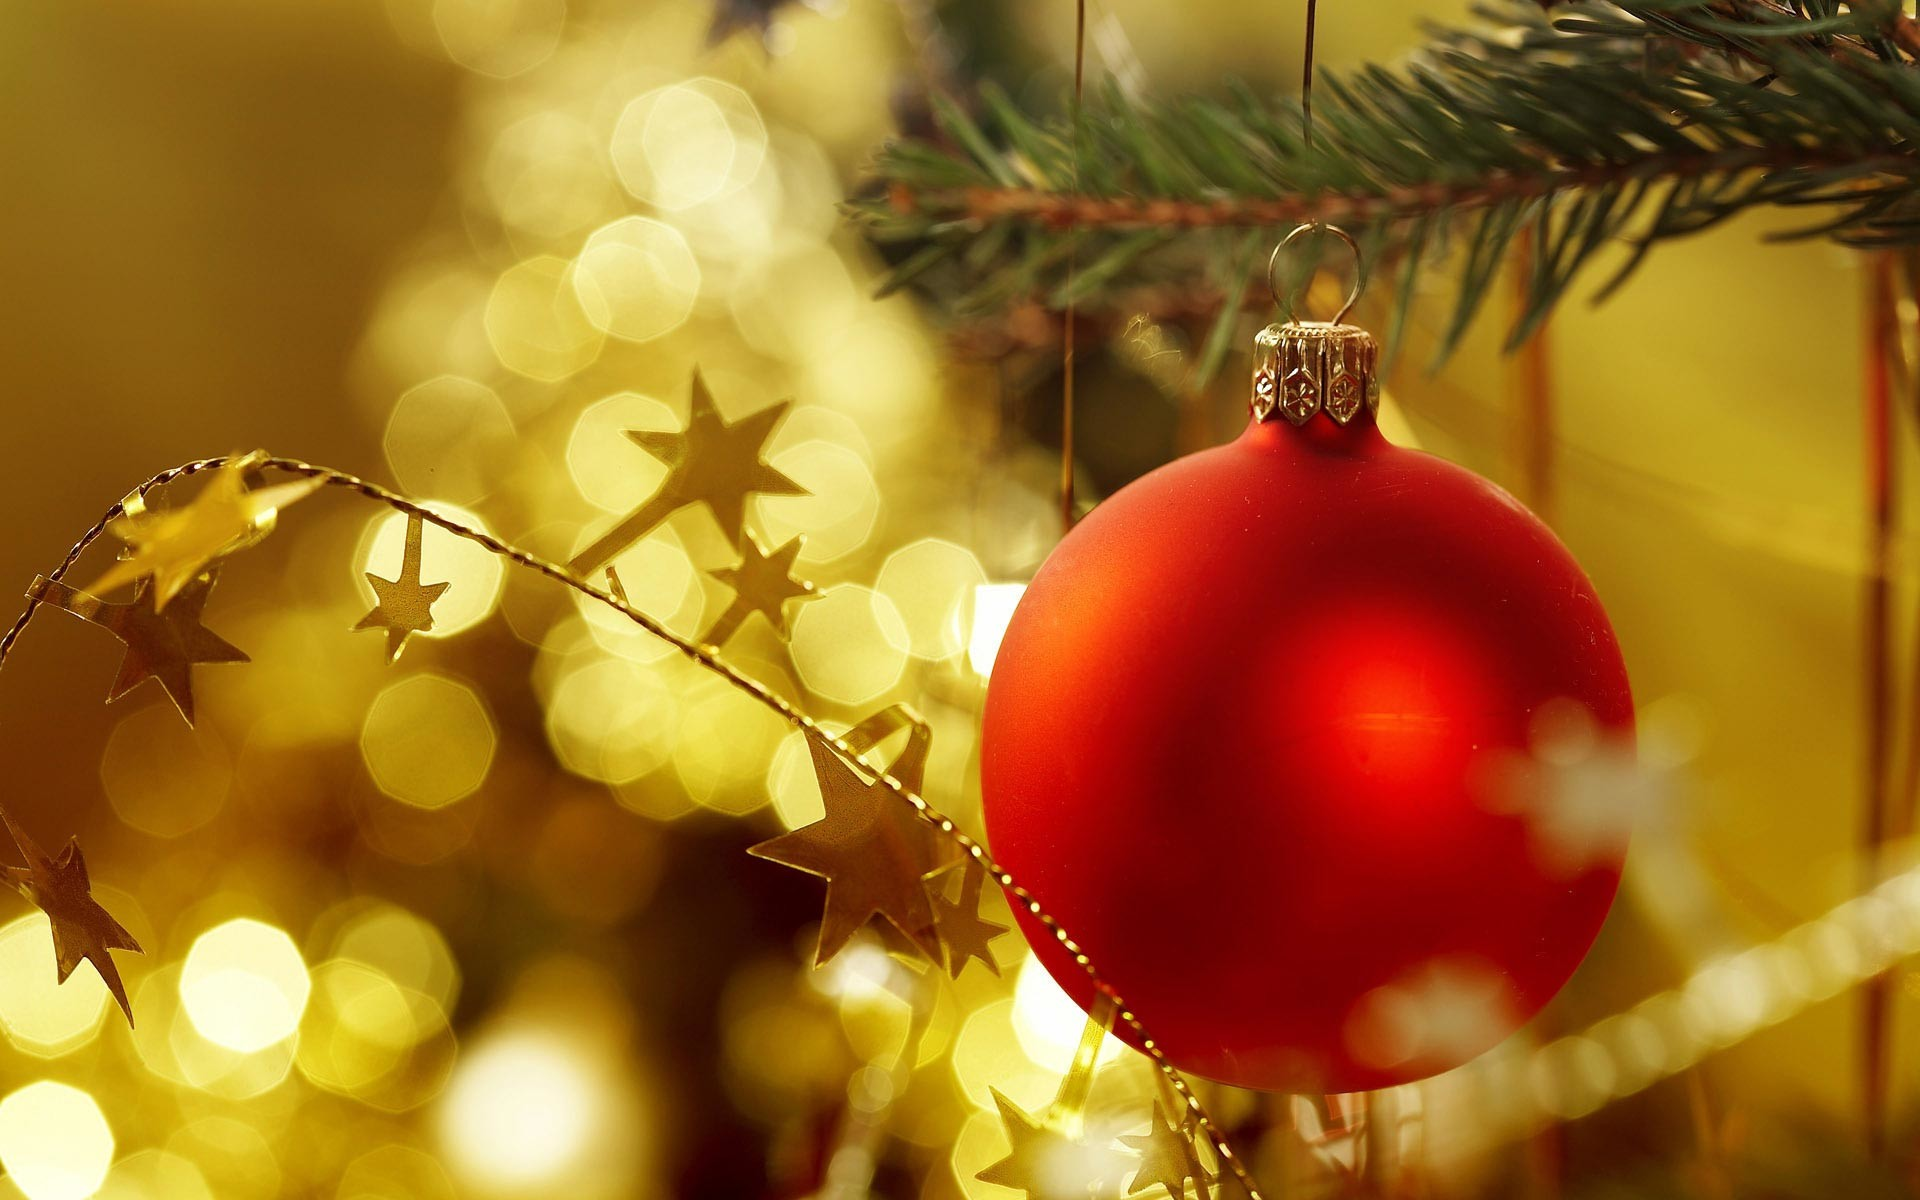 Christmas Hd Wallpaper.Christmas Wallpapers Hd 87 Background Pictures